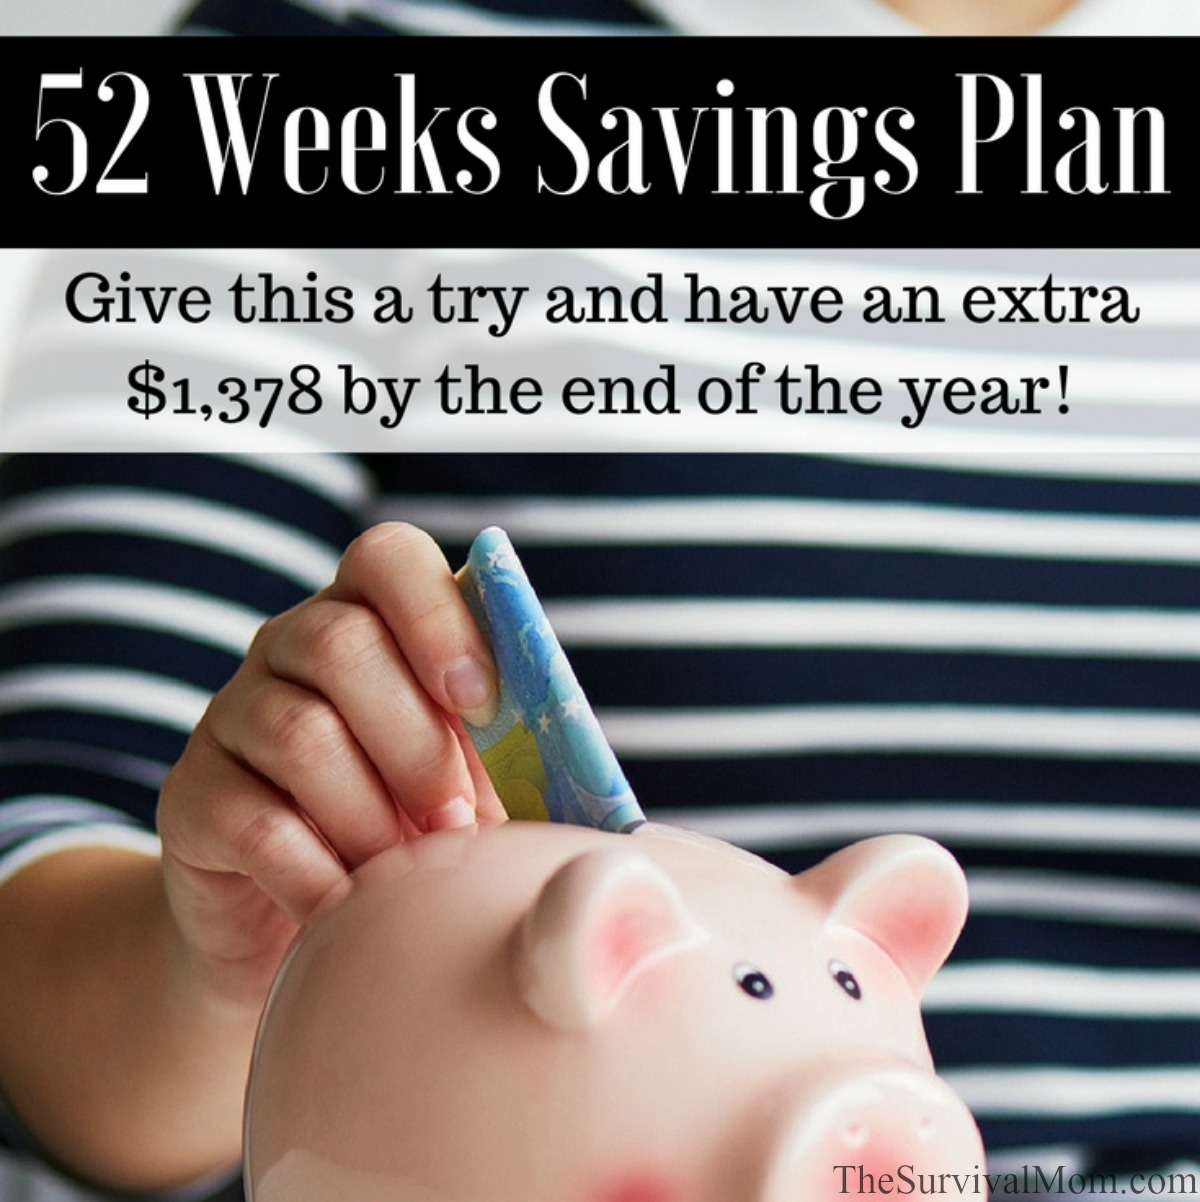 52 Weeks Savings Plan Give this a try and have an extra $1378 by the end of the year via The Survival Mom